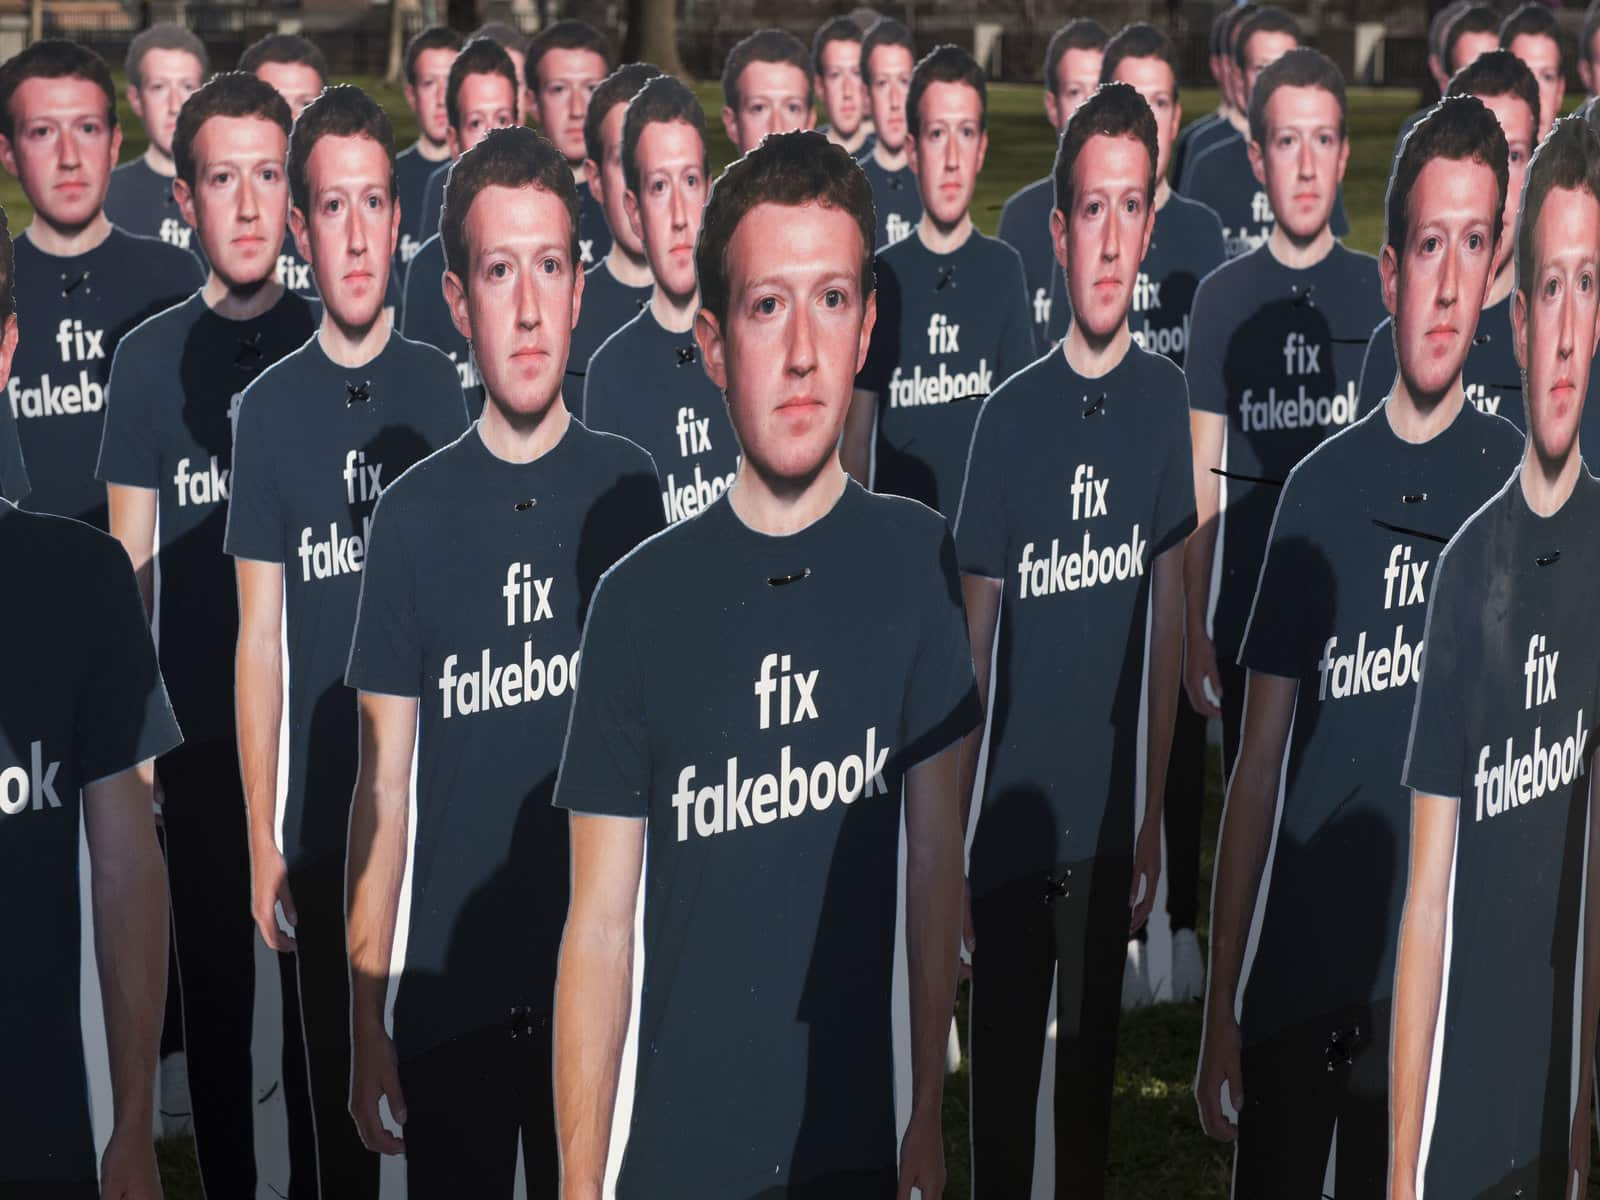 Facebook lawsuit and the German investigation into the account requirement mandate to use the Oculus Quest.